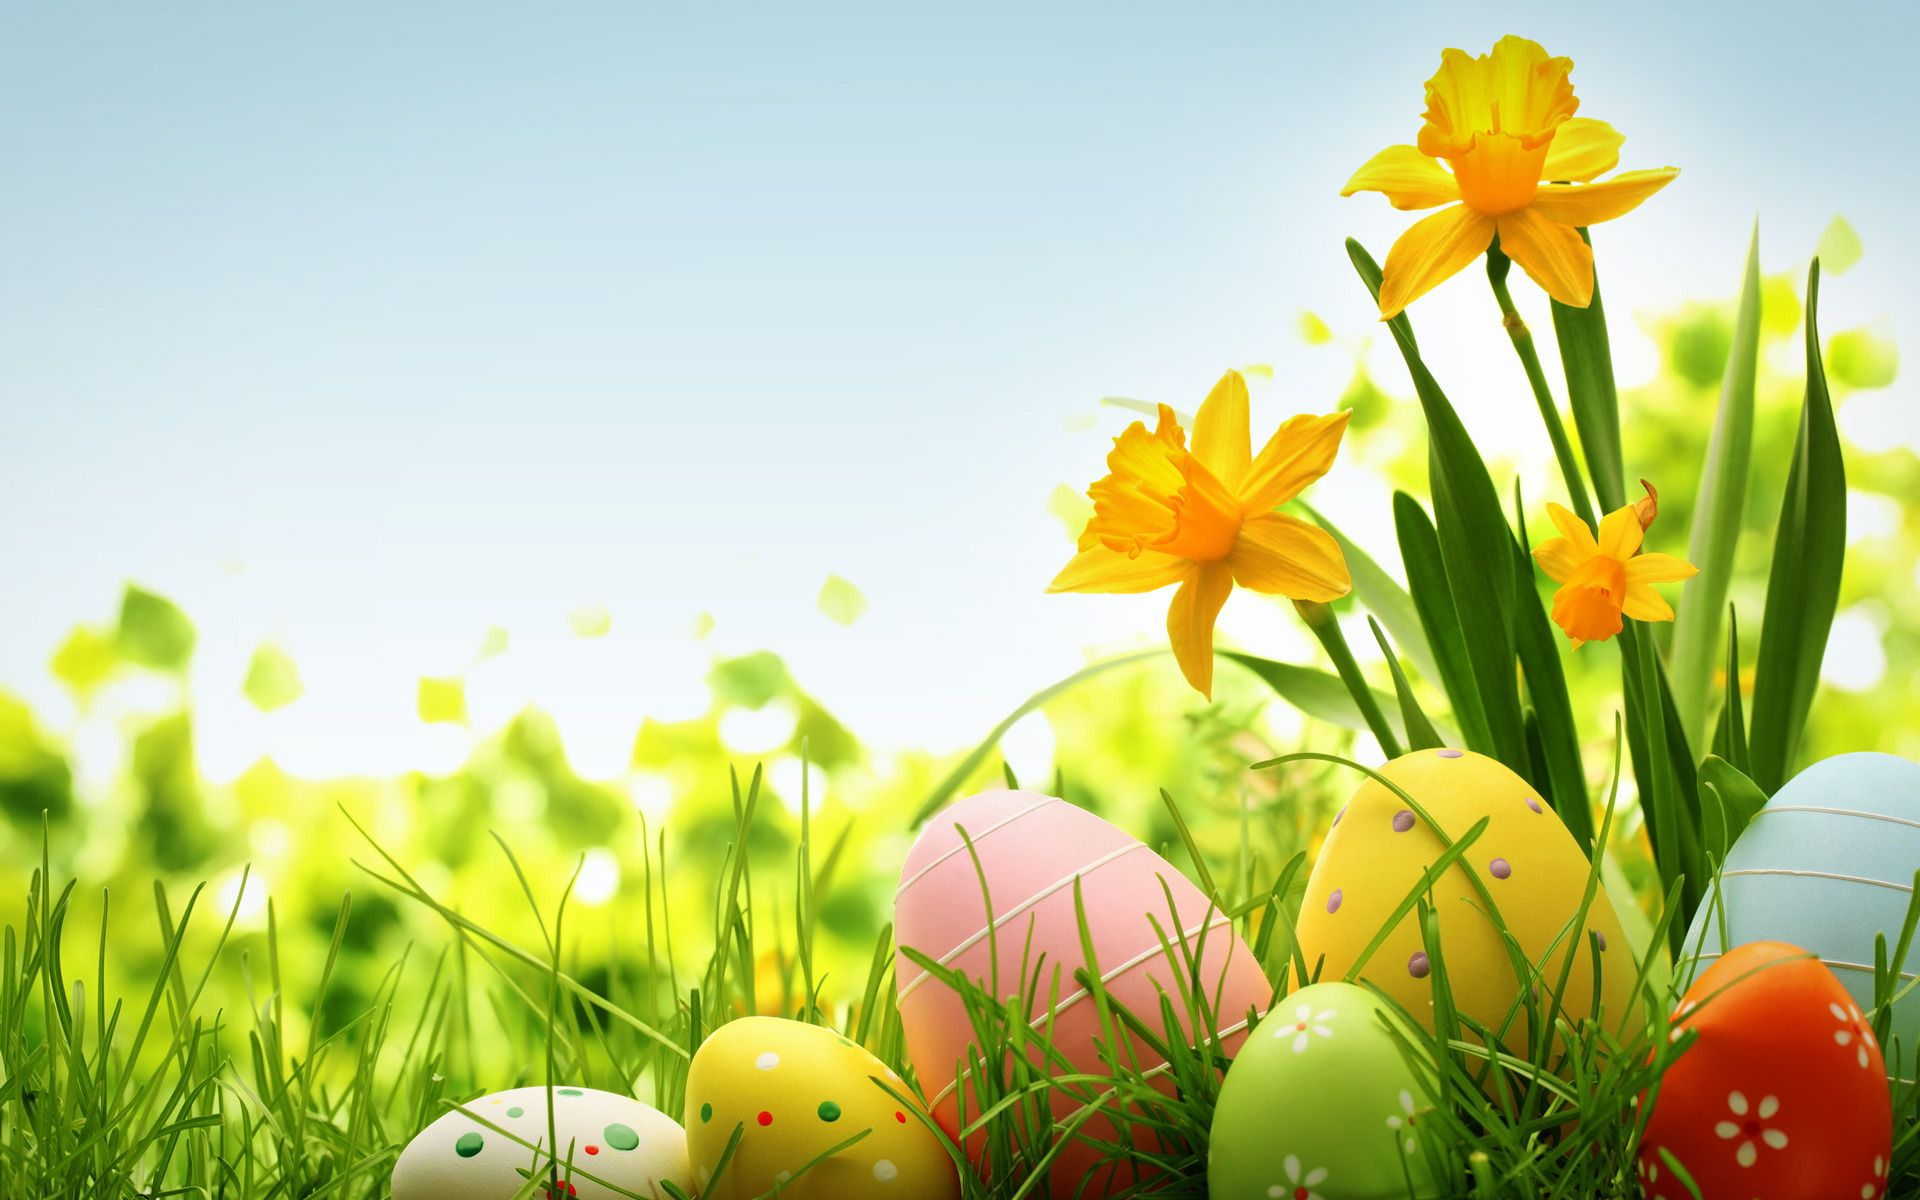 Free Easter Wallpaper For Windows 10 In 2020 Easter Wallpaper